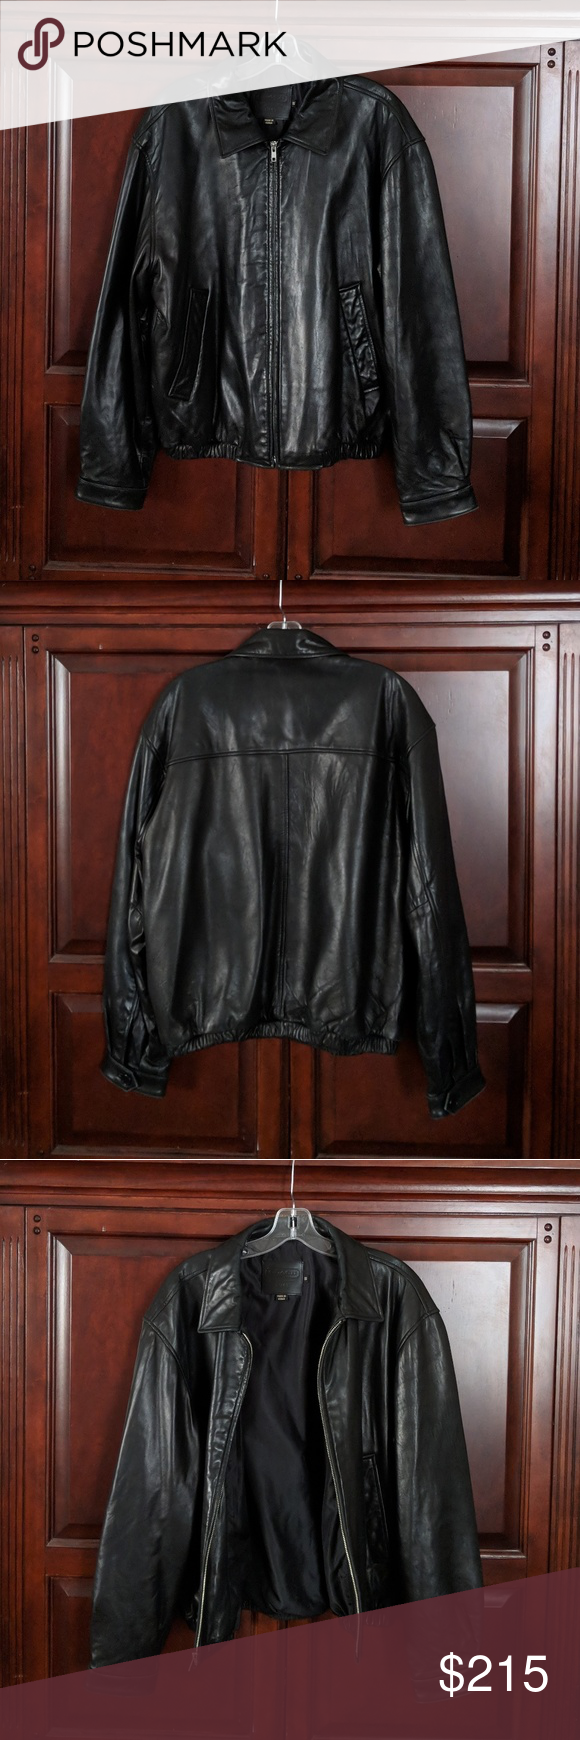 Coach black leather jacket size small Black leather